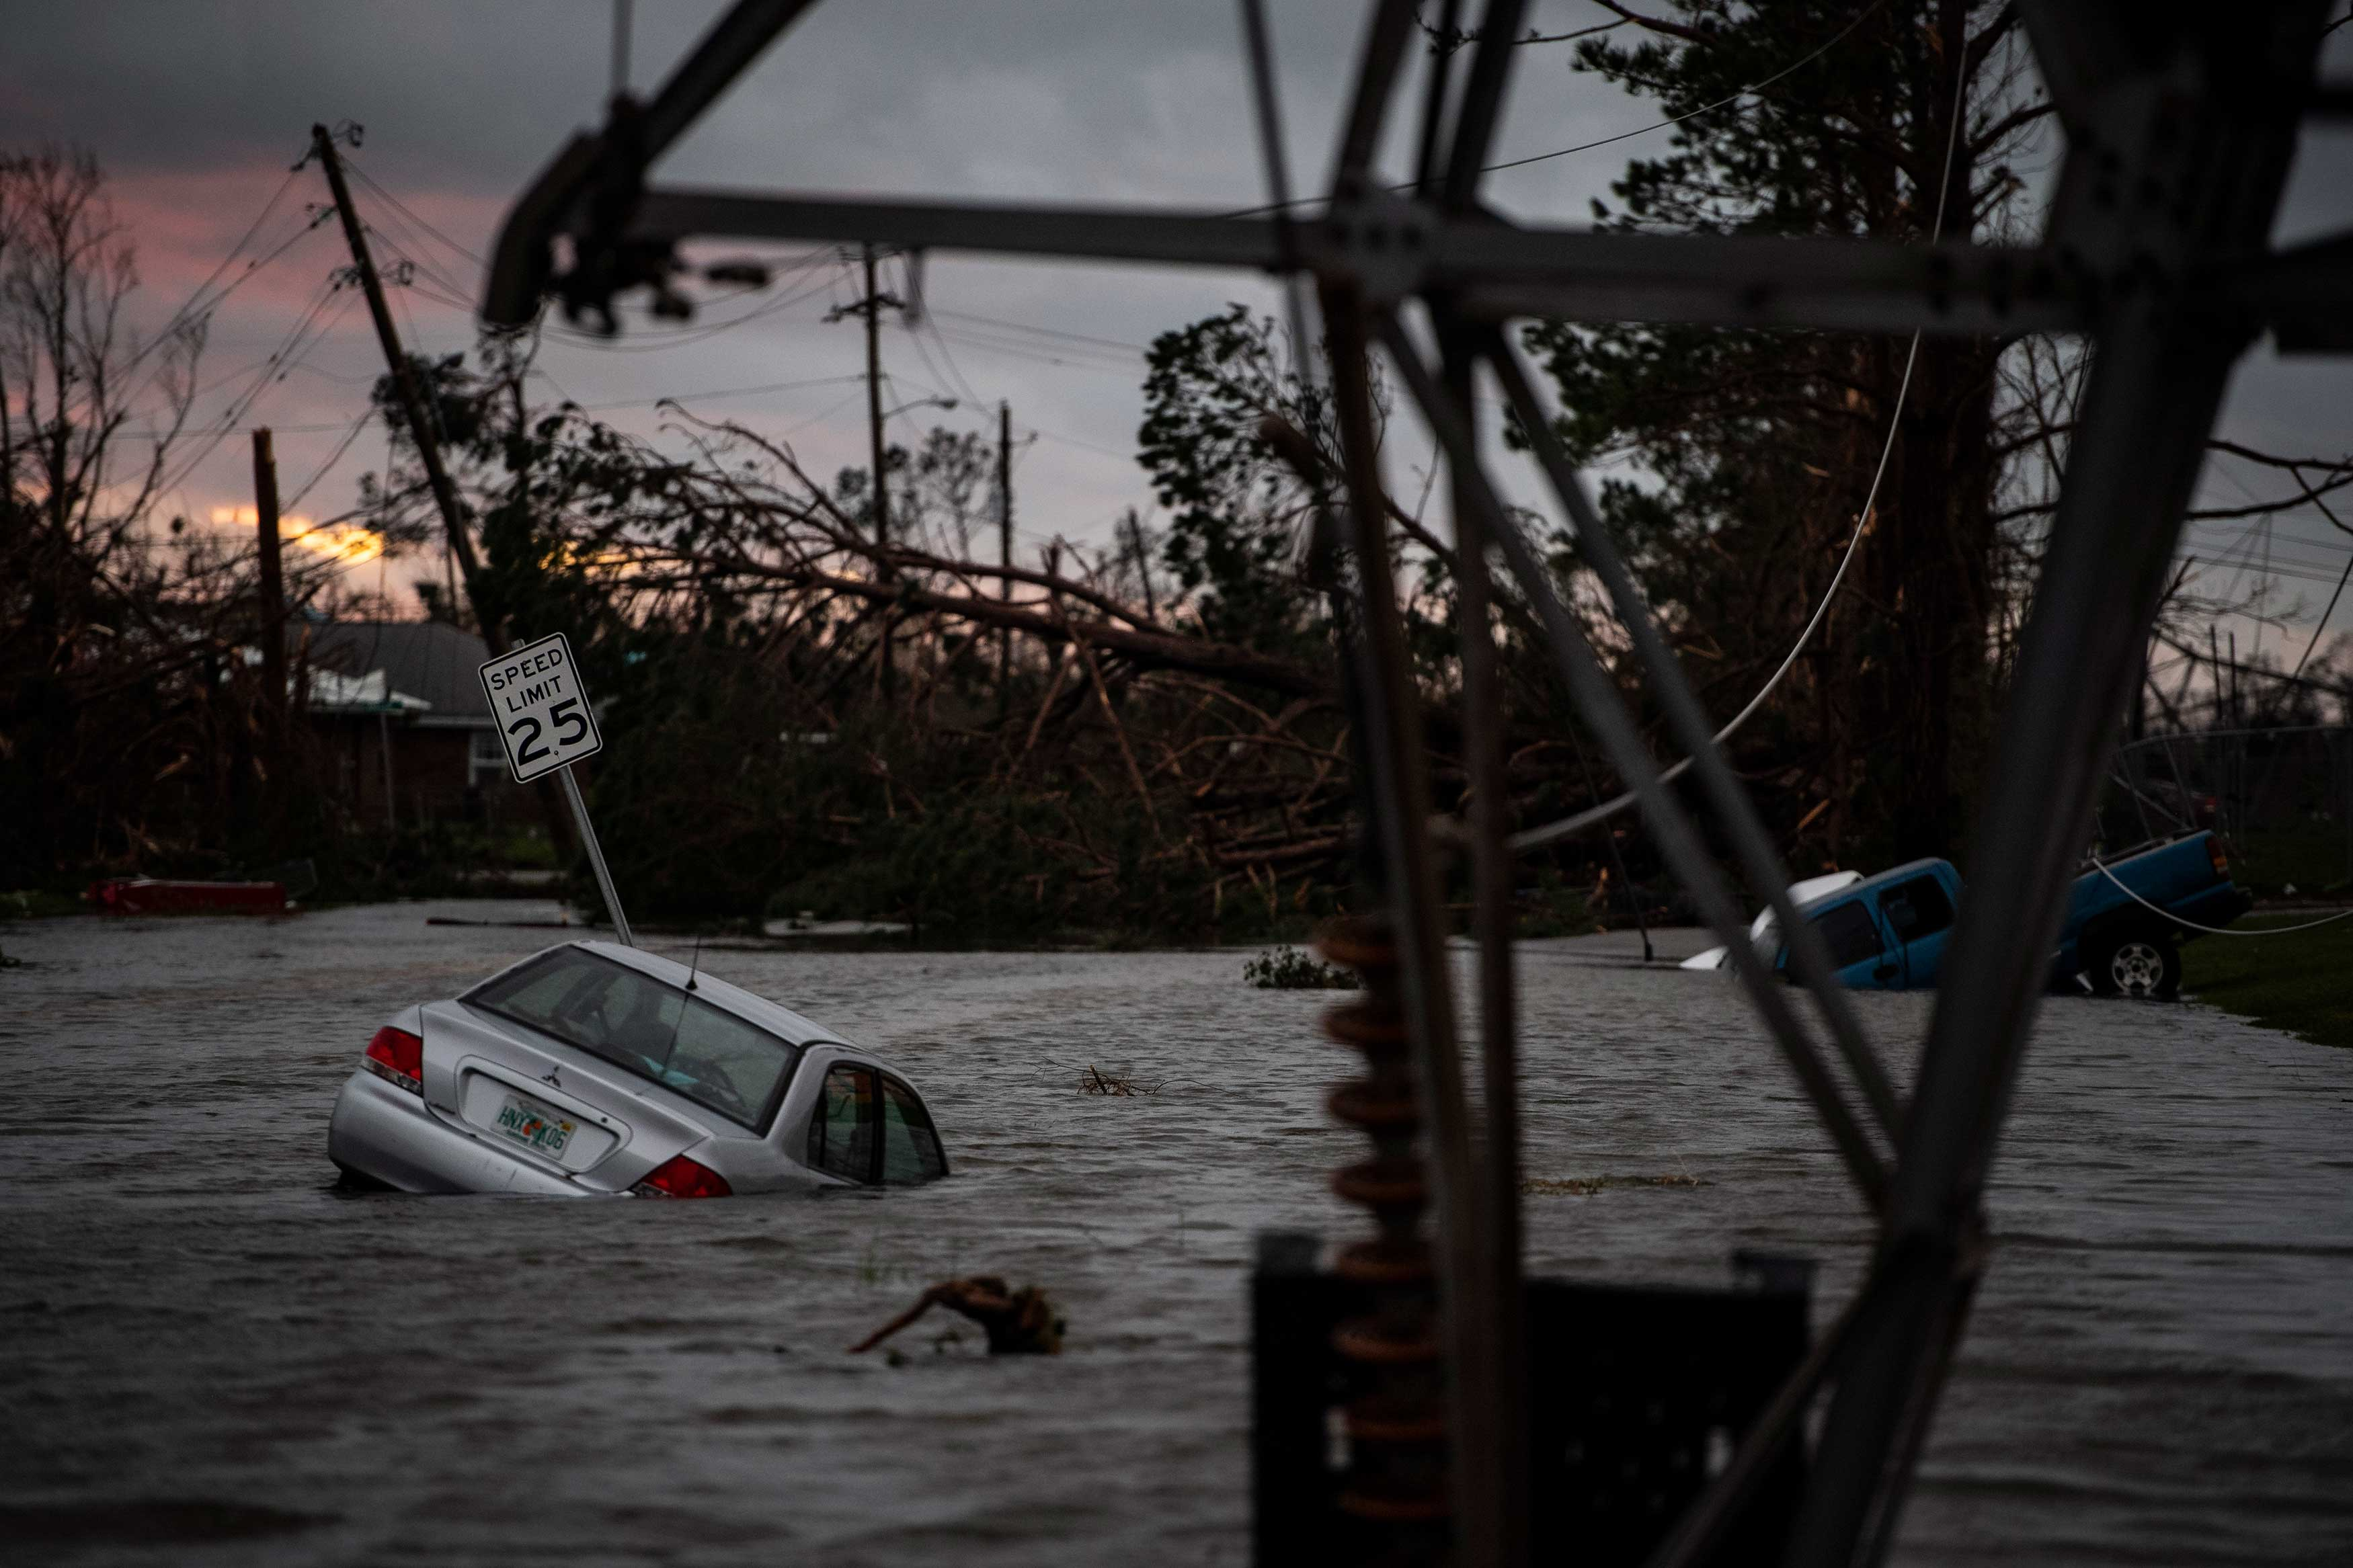 A car is seen caught in flood water after category 4 Hurricane Michael made land fall along the Florida panhandle, on Oct. 10, 2018 in Panama City, Fla.